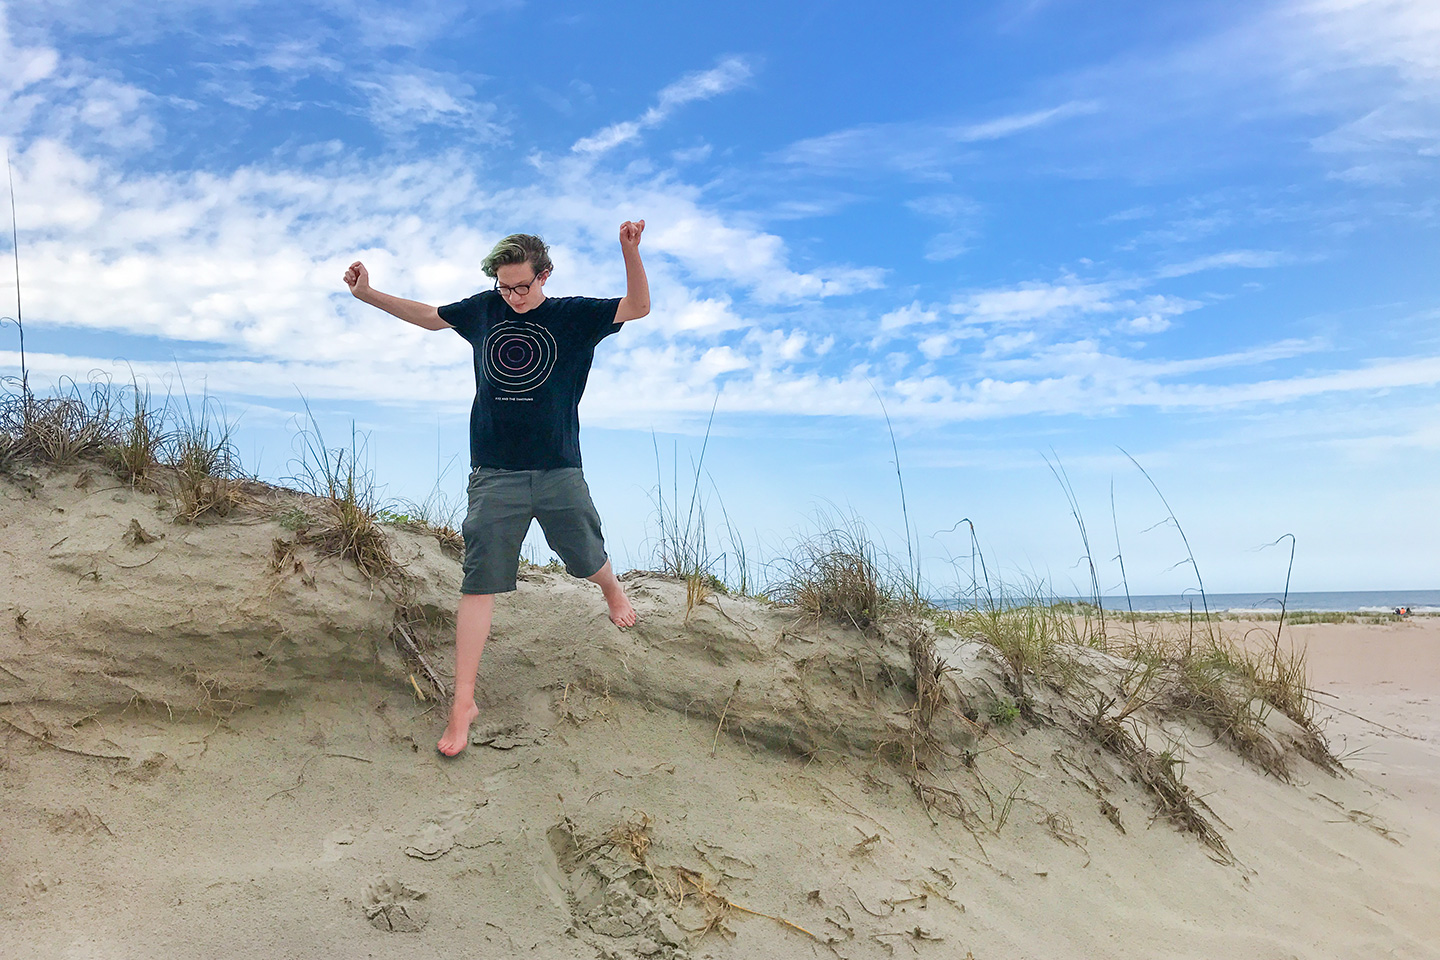 List of Fun Things To Do In St. Augustine, Florida - St. Augustine Beach